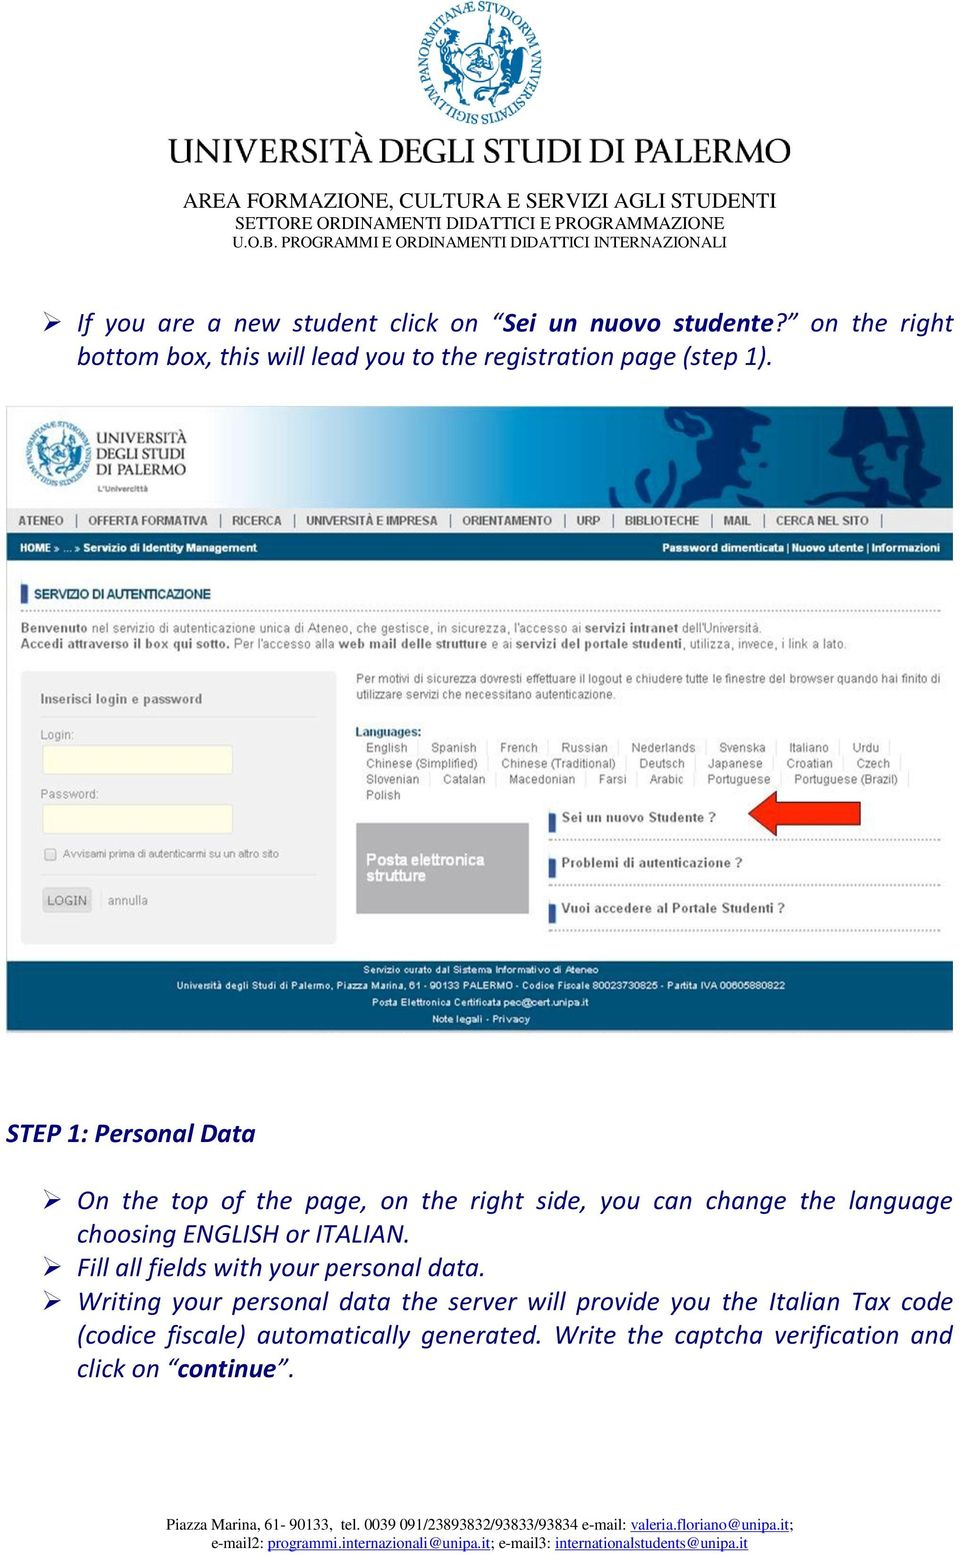 STEP 1: Personal Data On the top of the page, on the right side, you can change the language choosing ENGLISH or